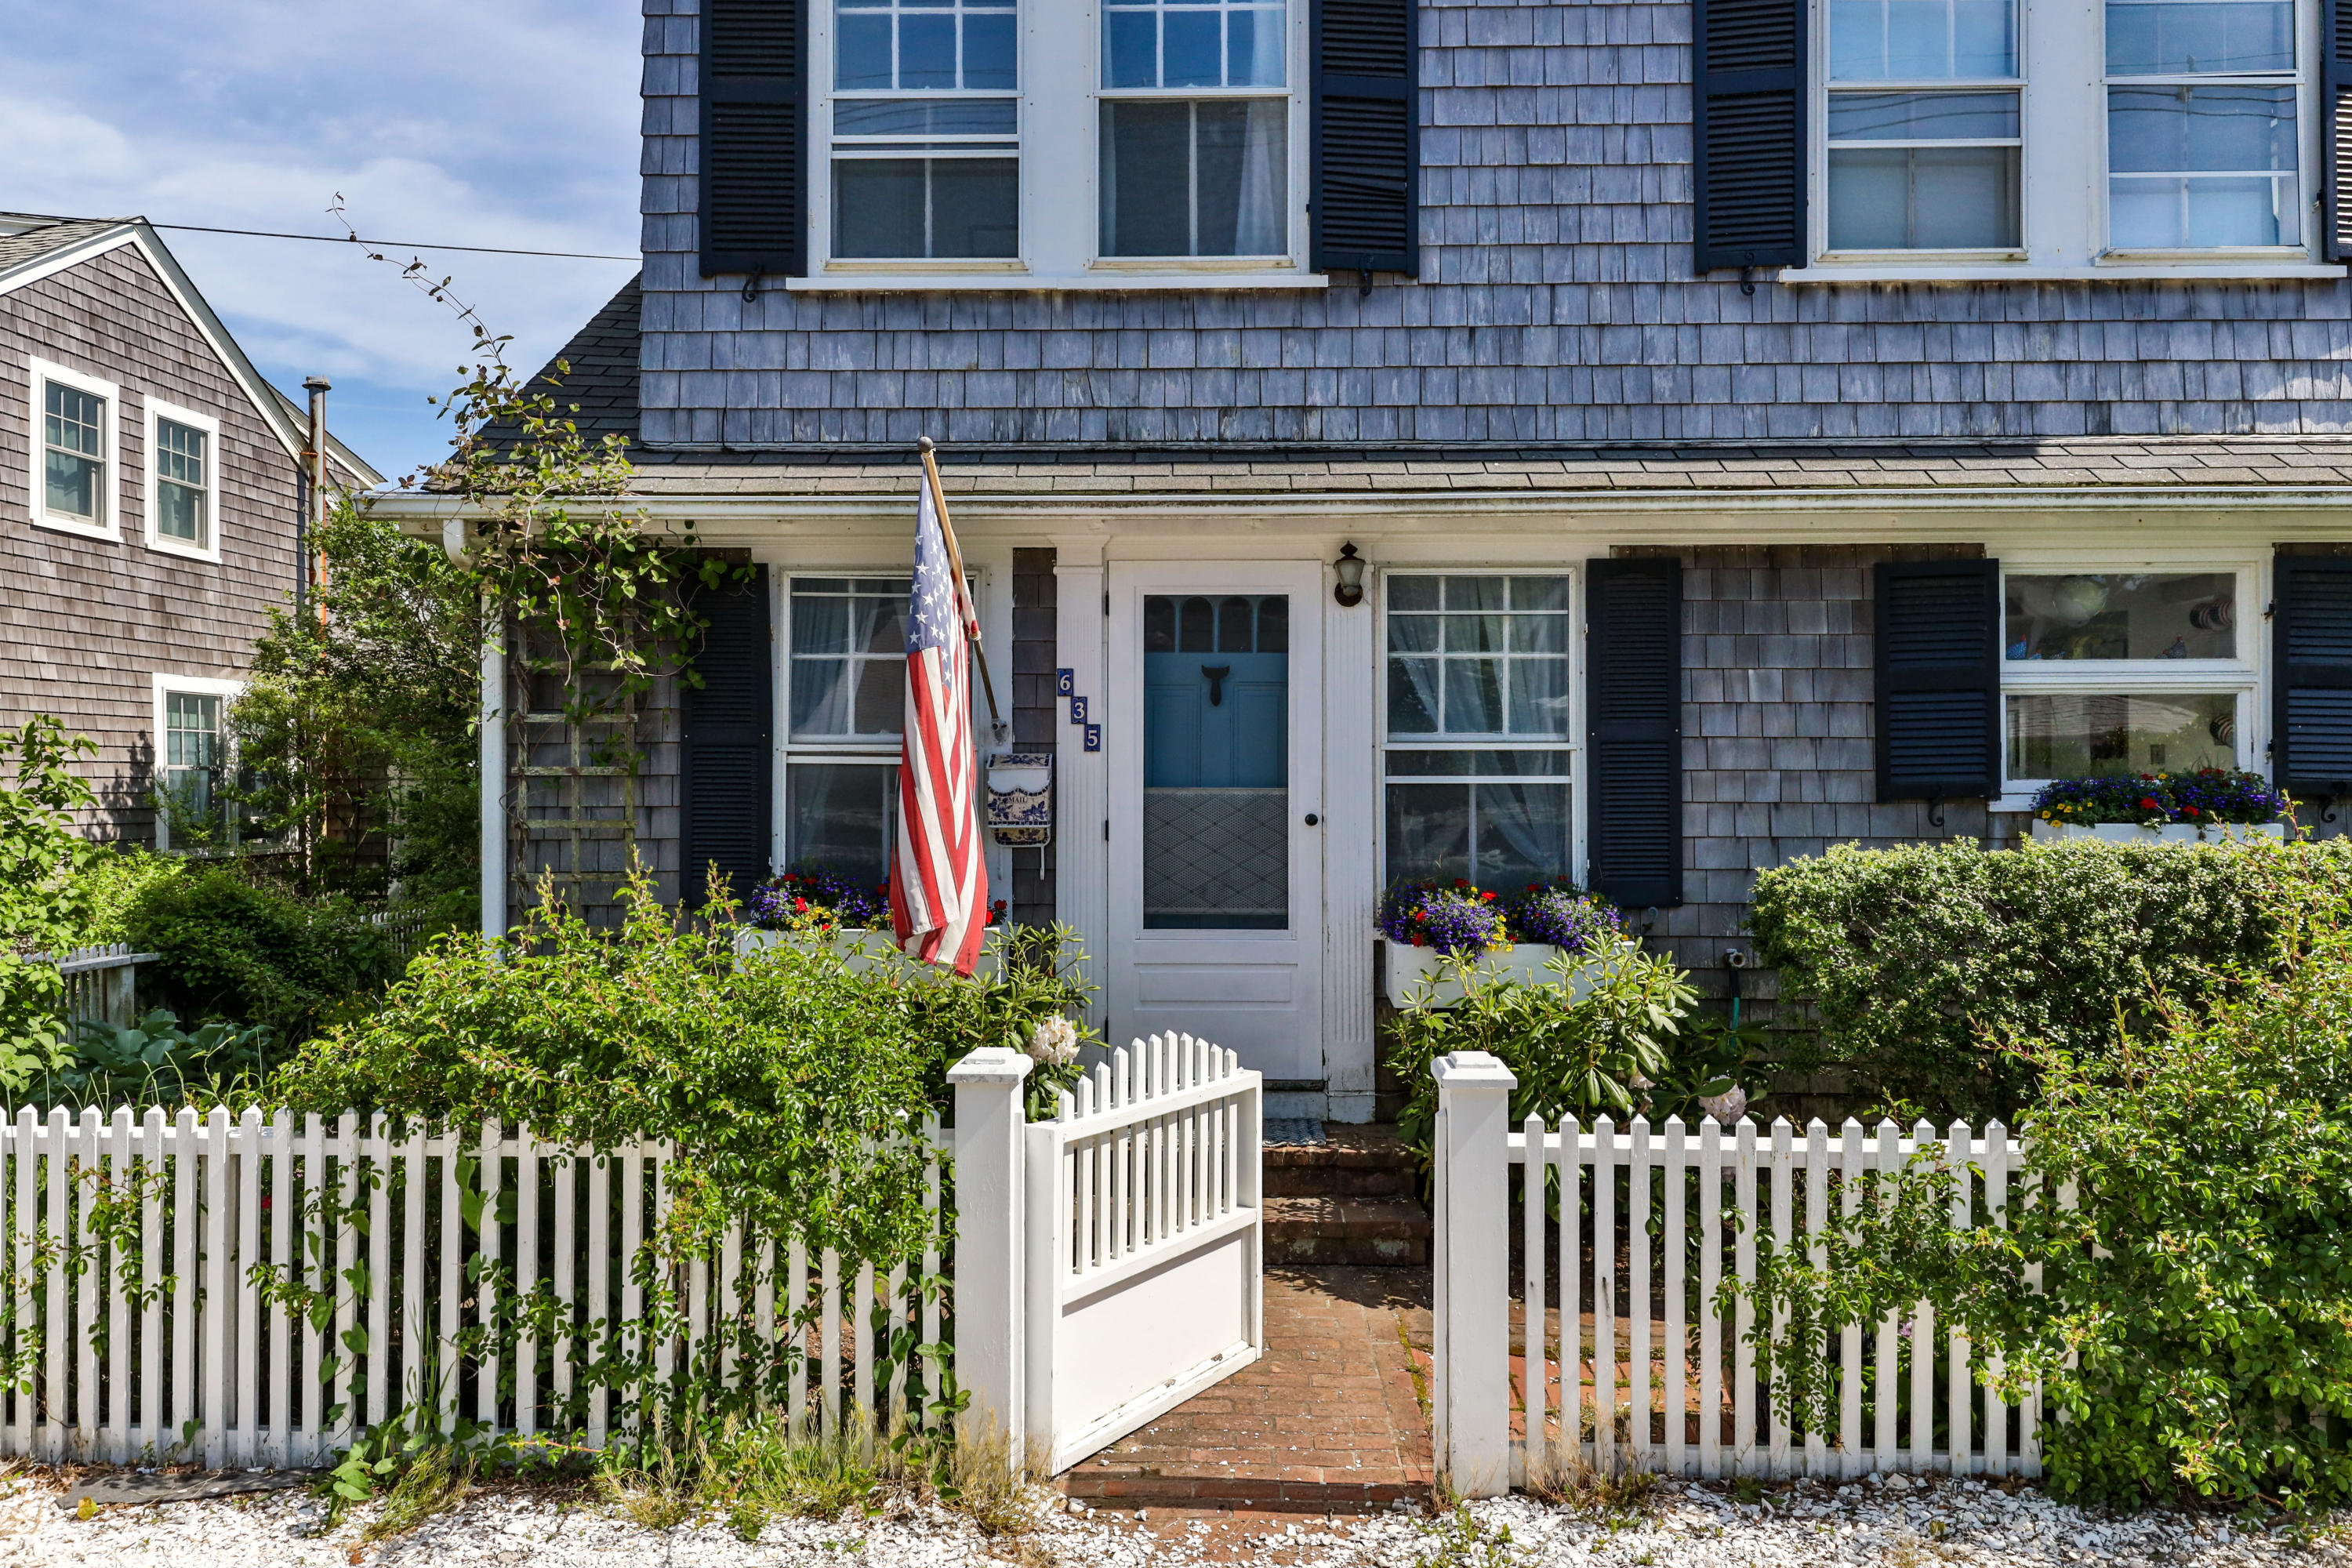 635 Commercial Street, Provincetown MA, 02657 details